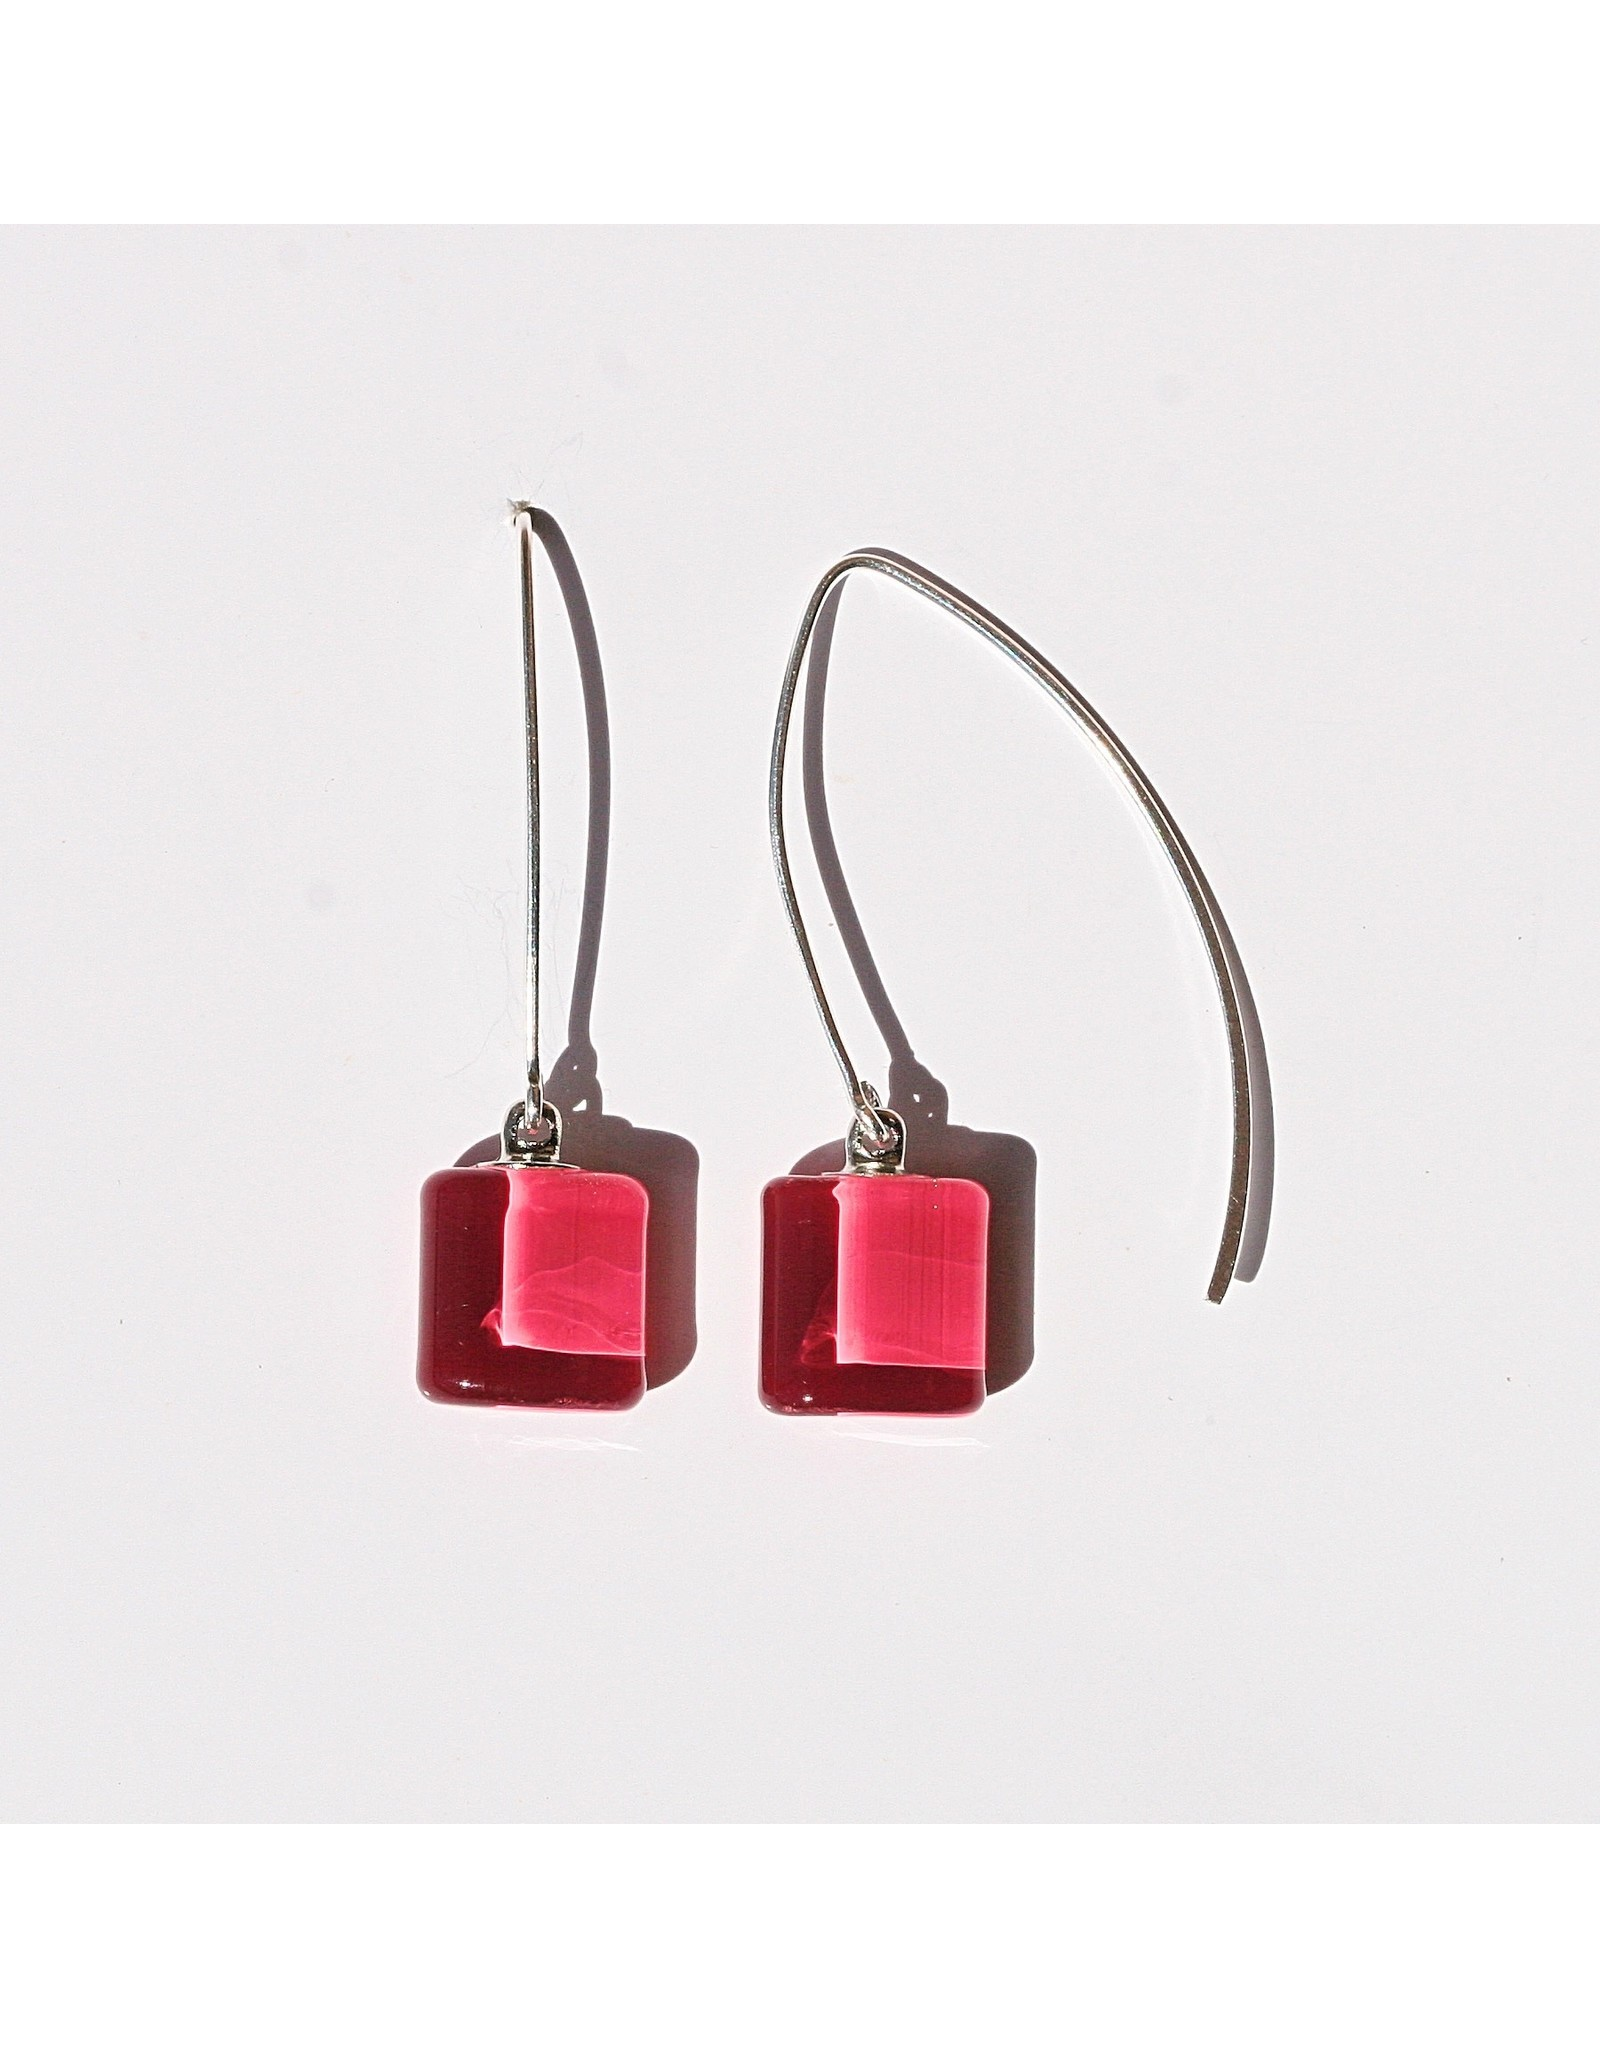 Perfecto Glass EARRING (Mini Square Dangle)